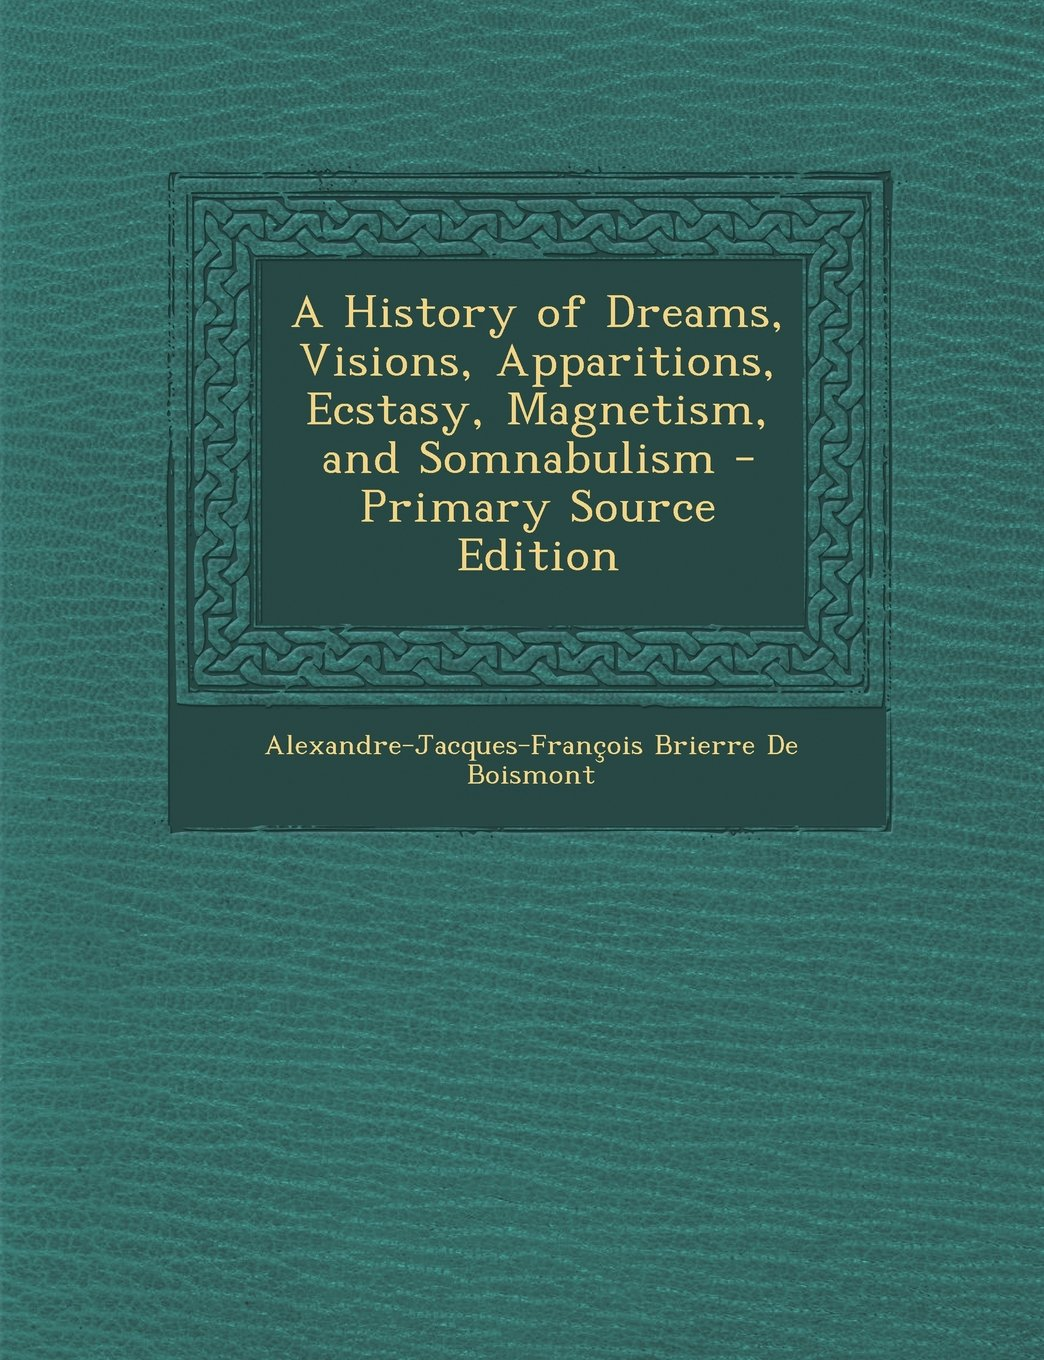 Read Online A History of Dreams, Visions, Apparitions, Ecstasy, Magnetism, and Somnabulism - Primary Source Edition PDF